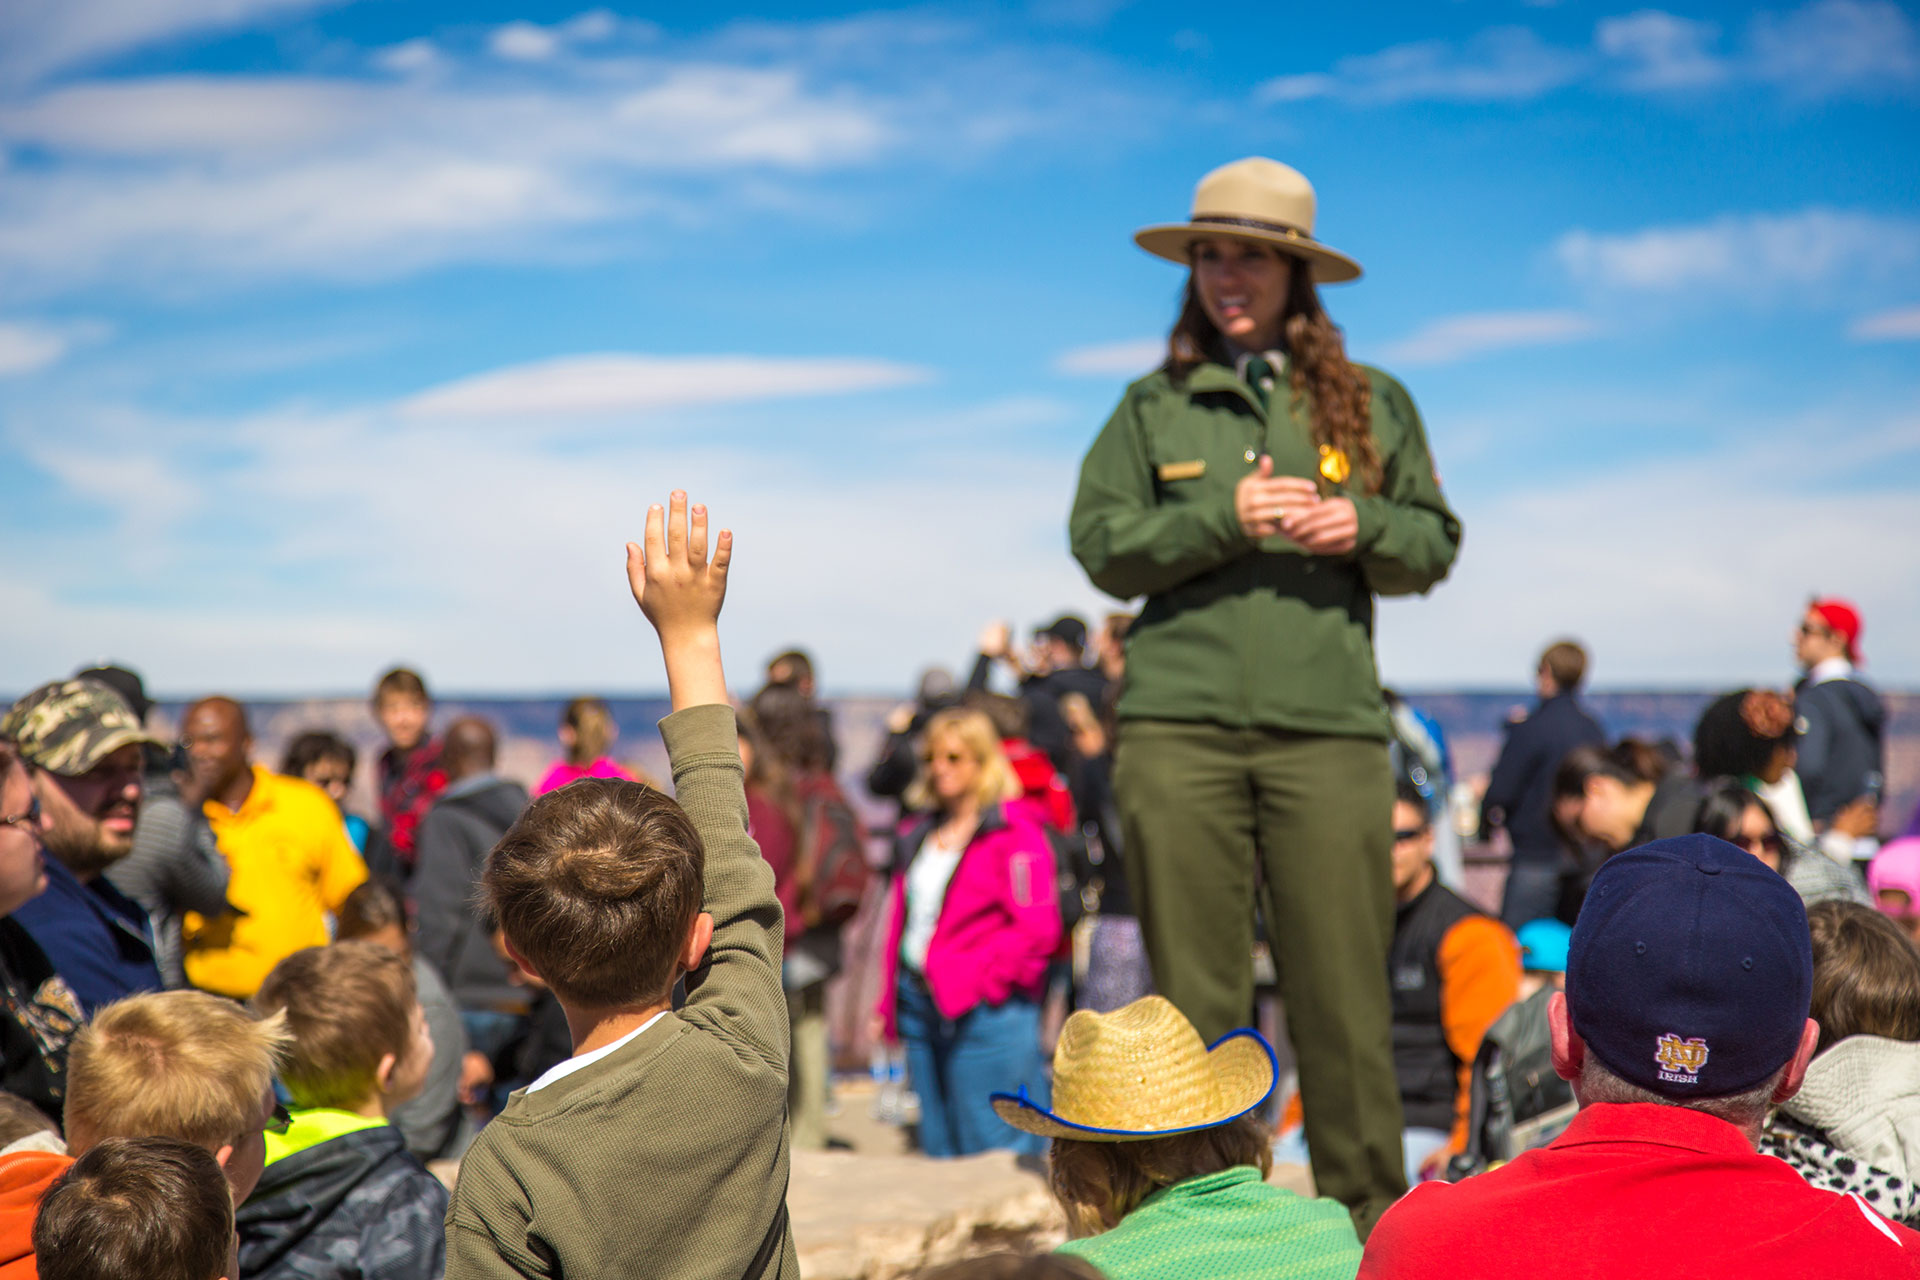 A park ranger replying to a kid's question in the south rim of Grand Canyon National Park, Arizona